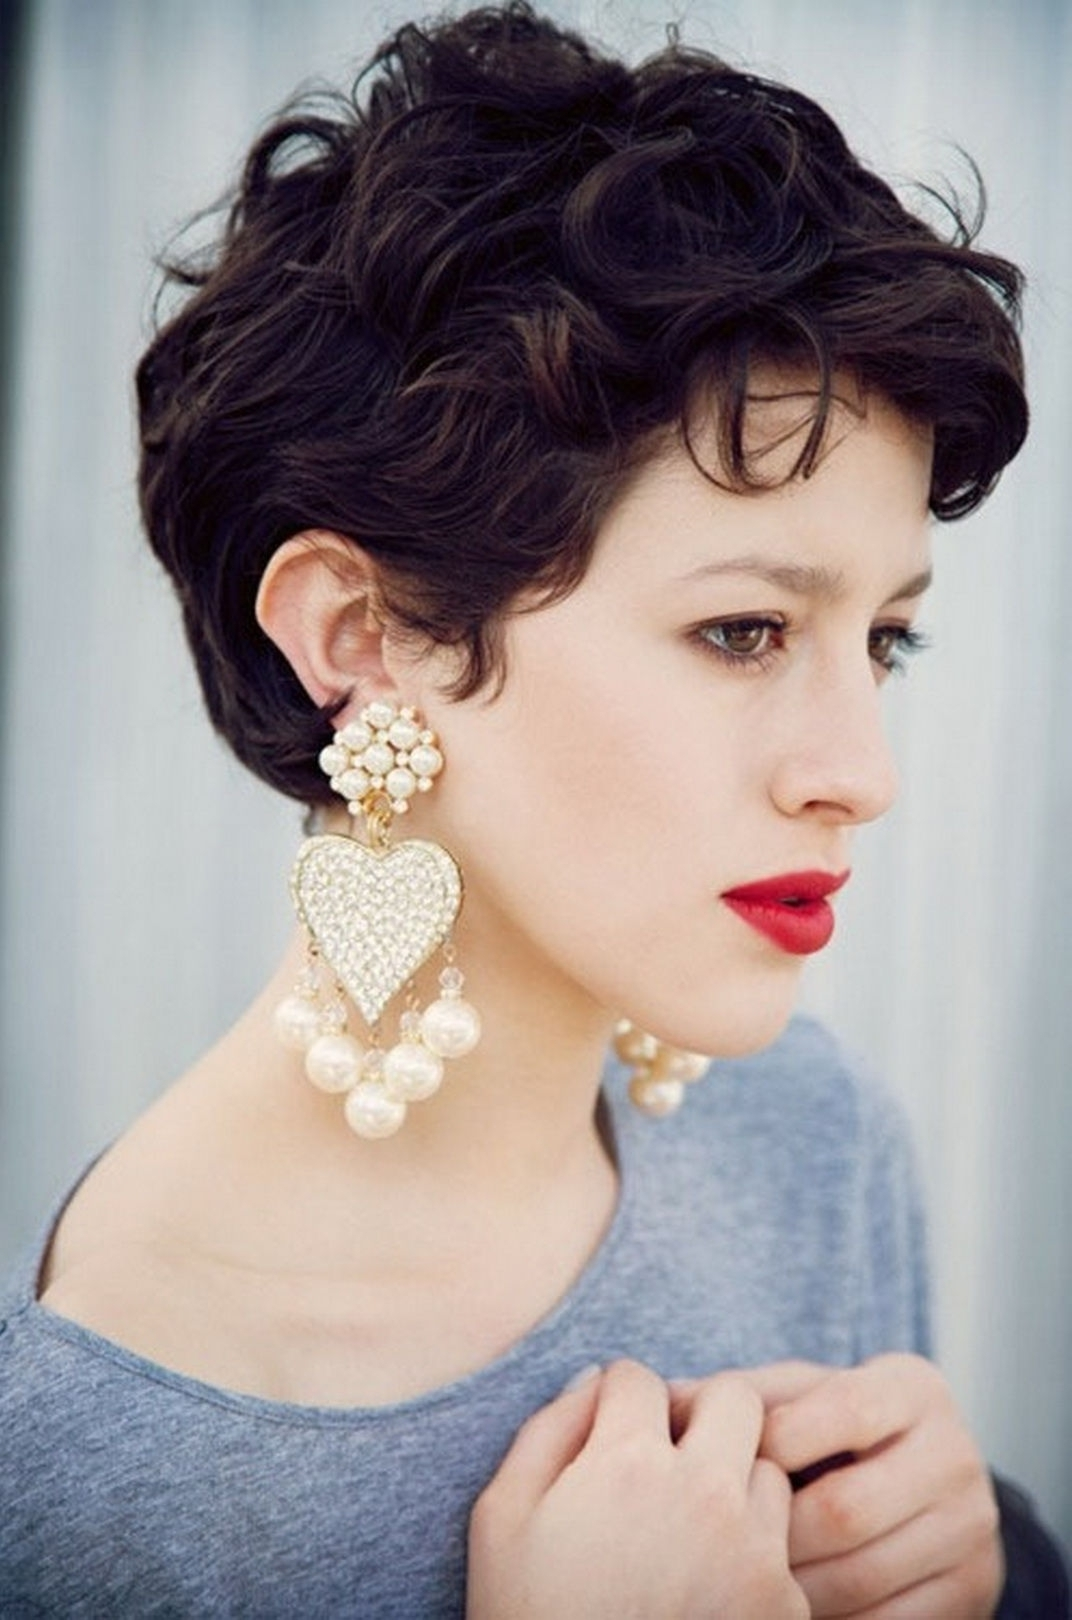 Pixie Haircut Wavy Hair Pixie Hairstyles For Thick Hair Women With Regard To Recent Pixie Hairstyles For Wavy Hair (View 9 of 15)